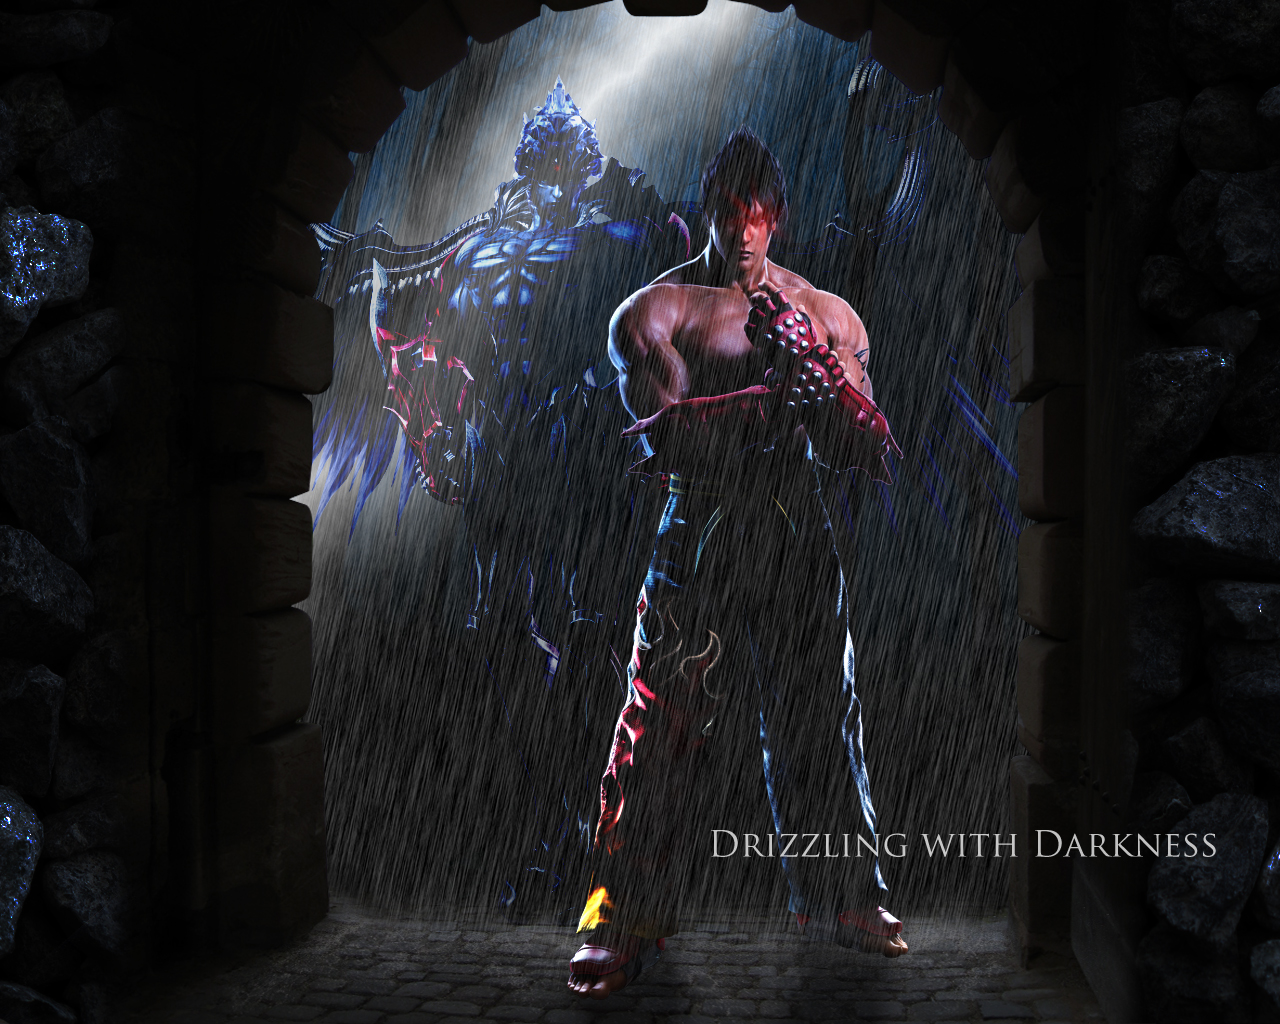 The Devil Gene: Drizzling With Darkness